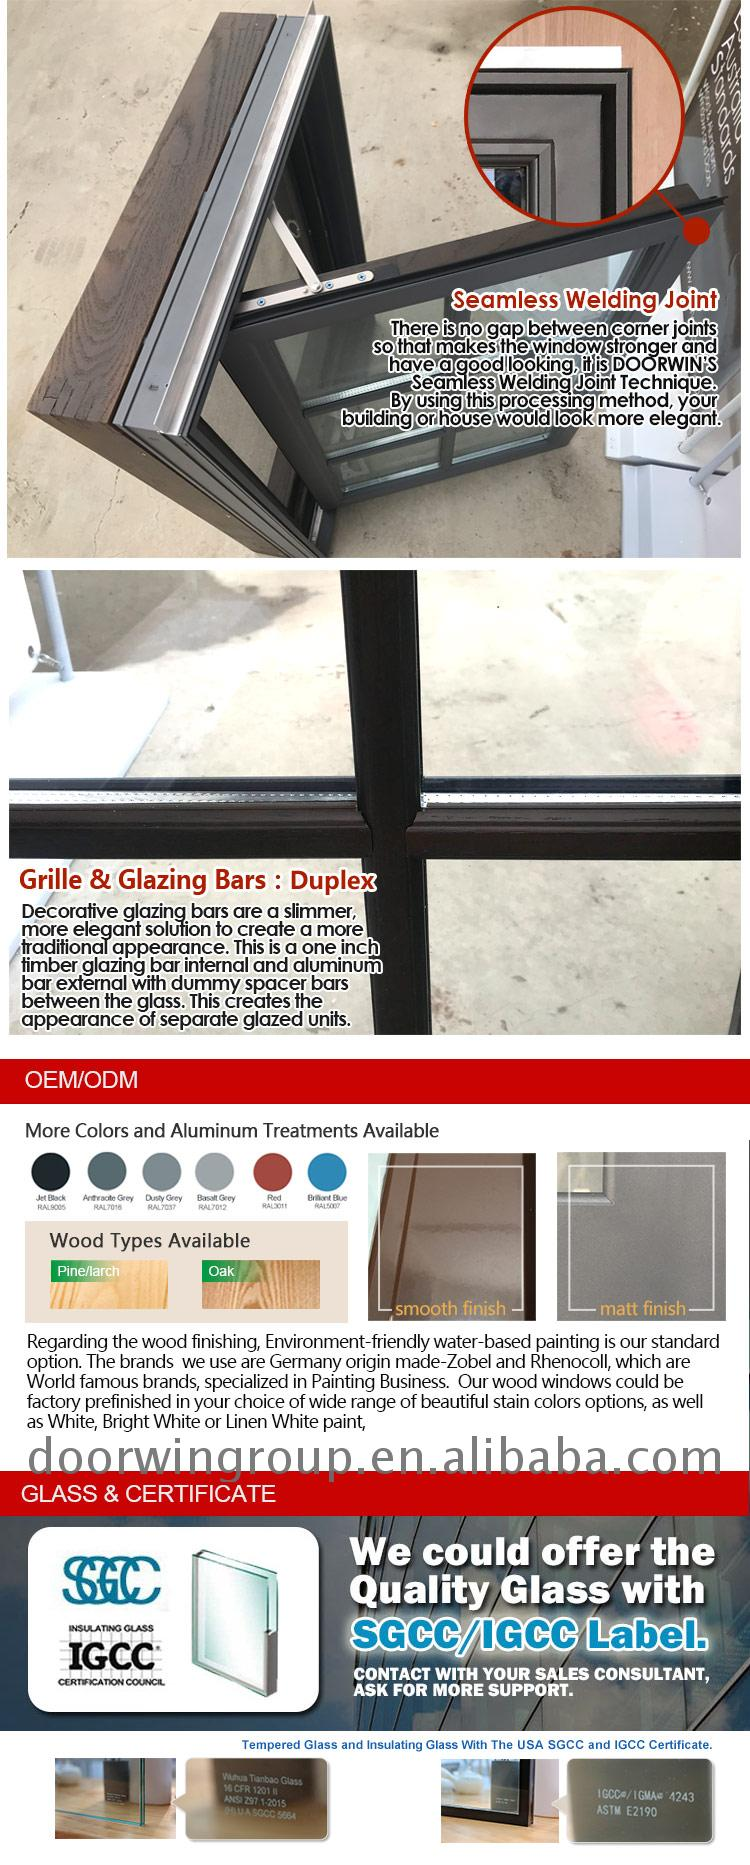 Shreveport cheap quality windows buy new online arched